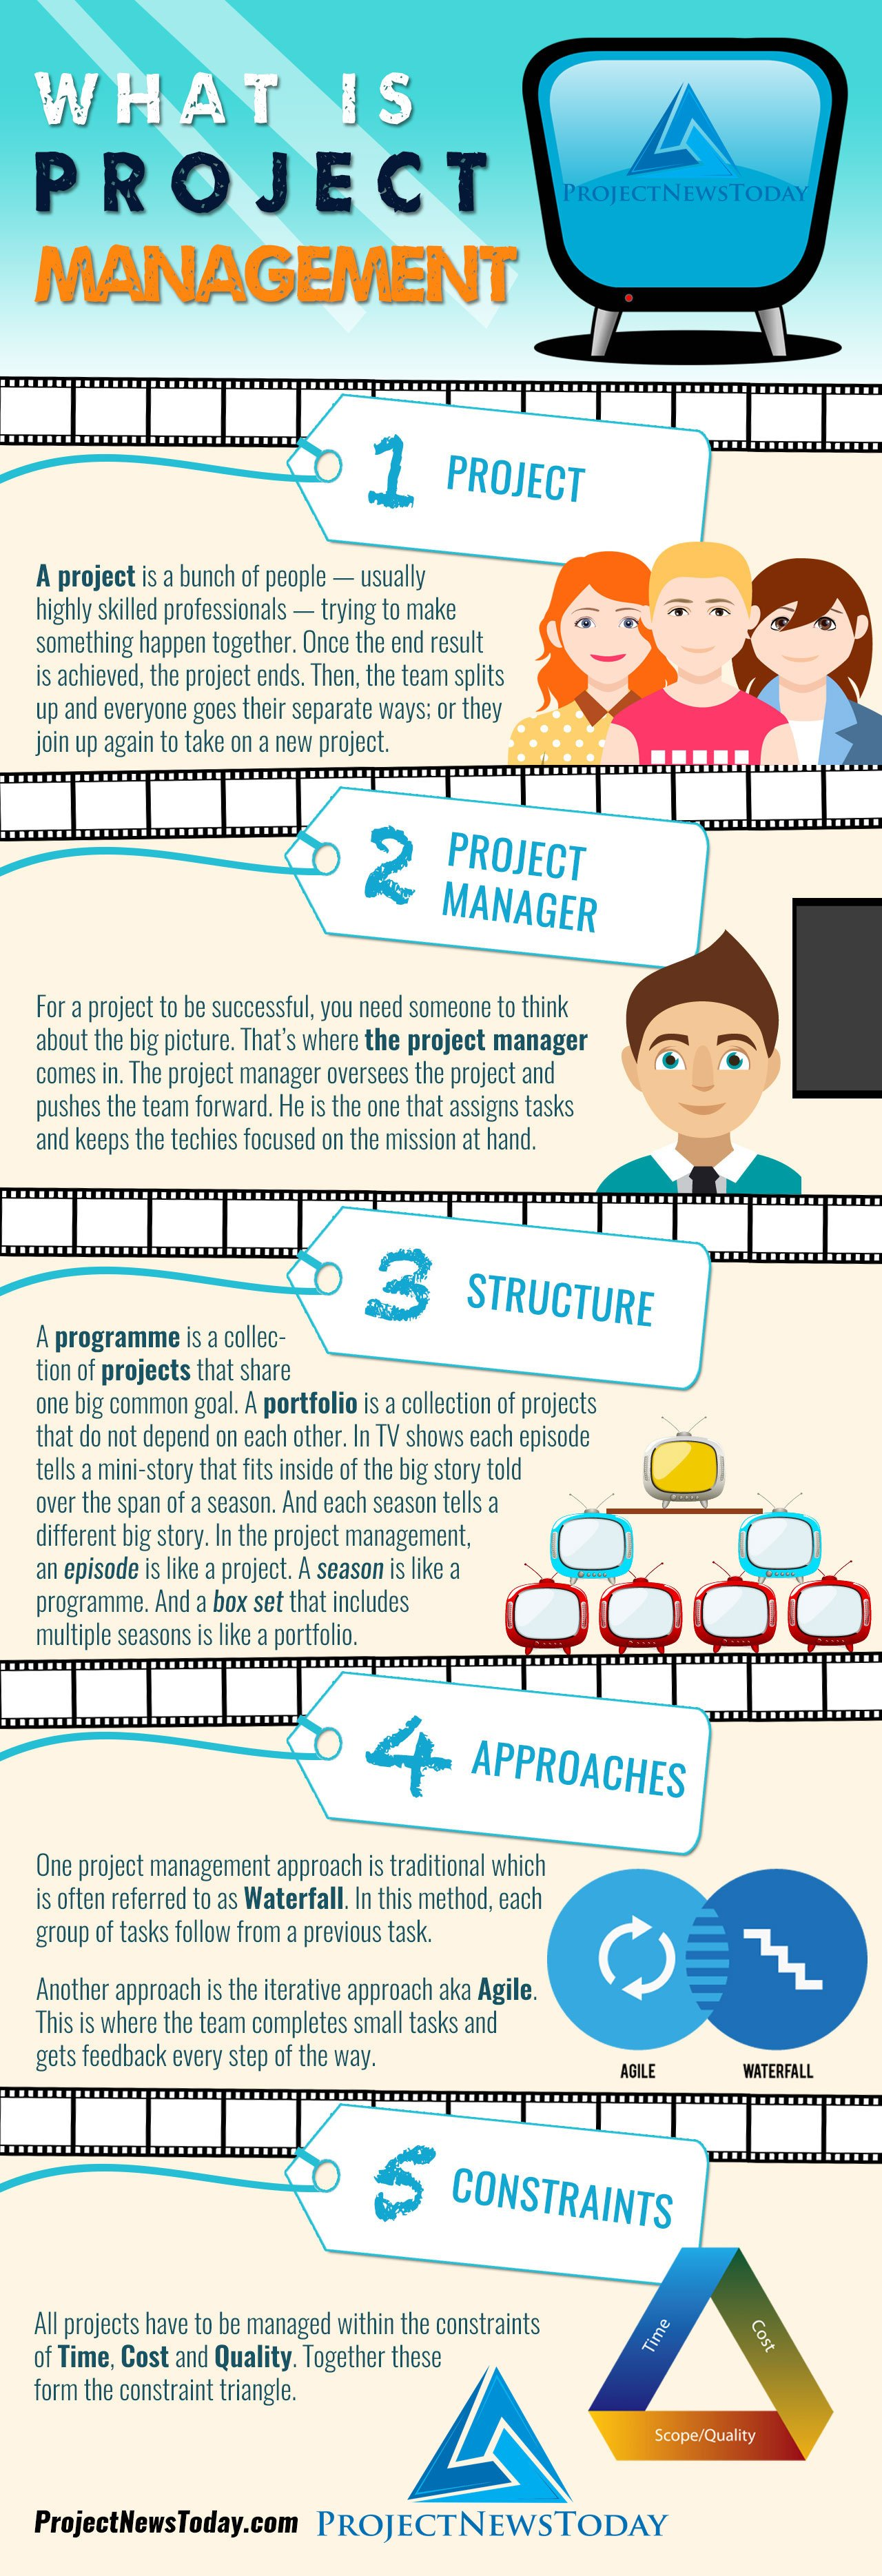 Project_Management_key_terms_definitions_infographic